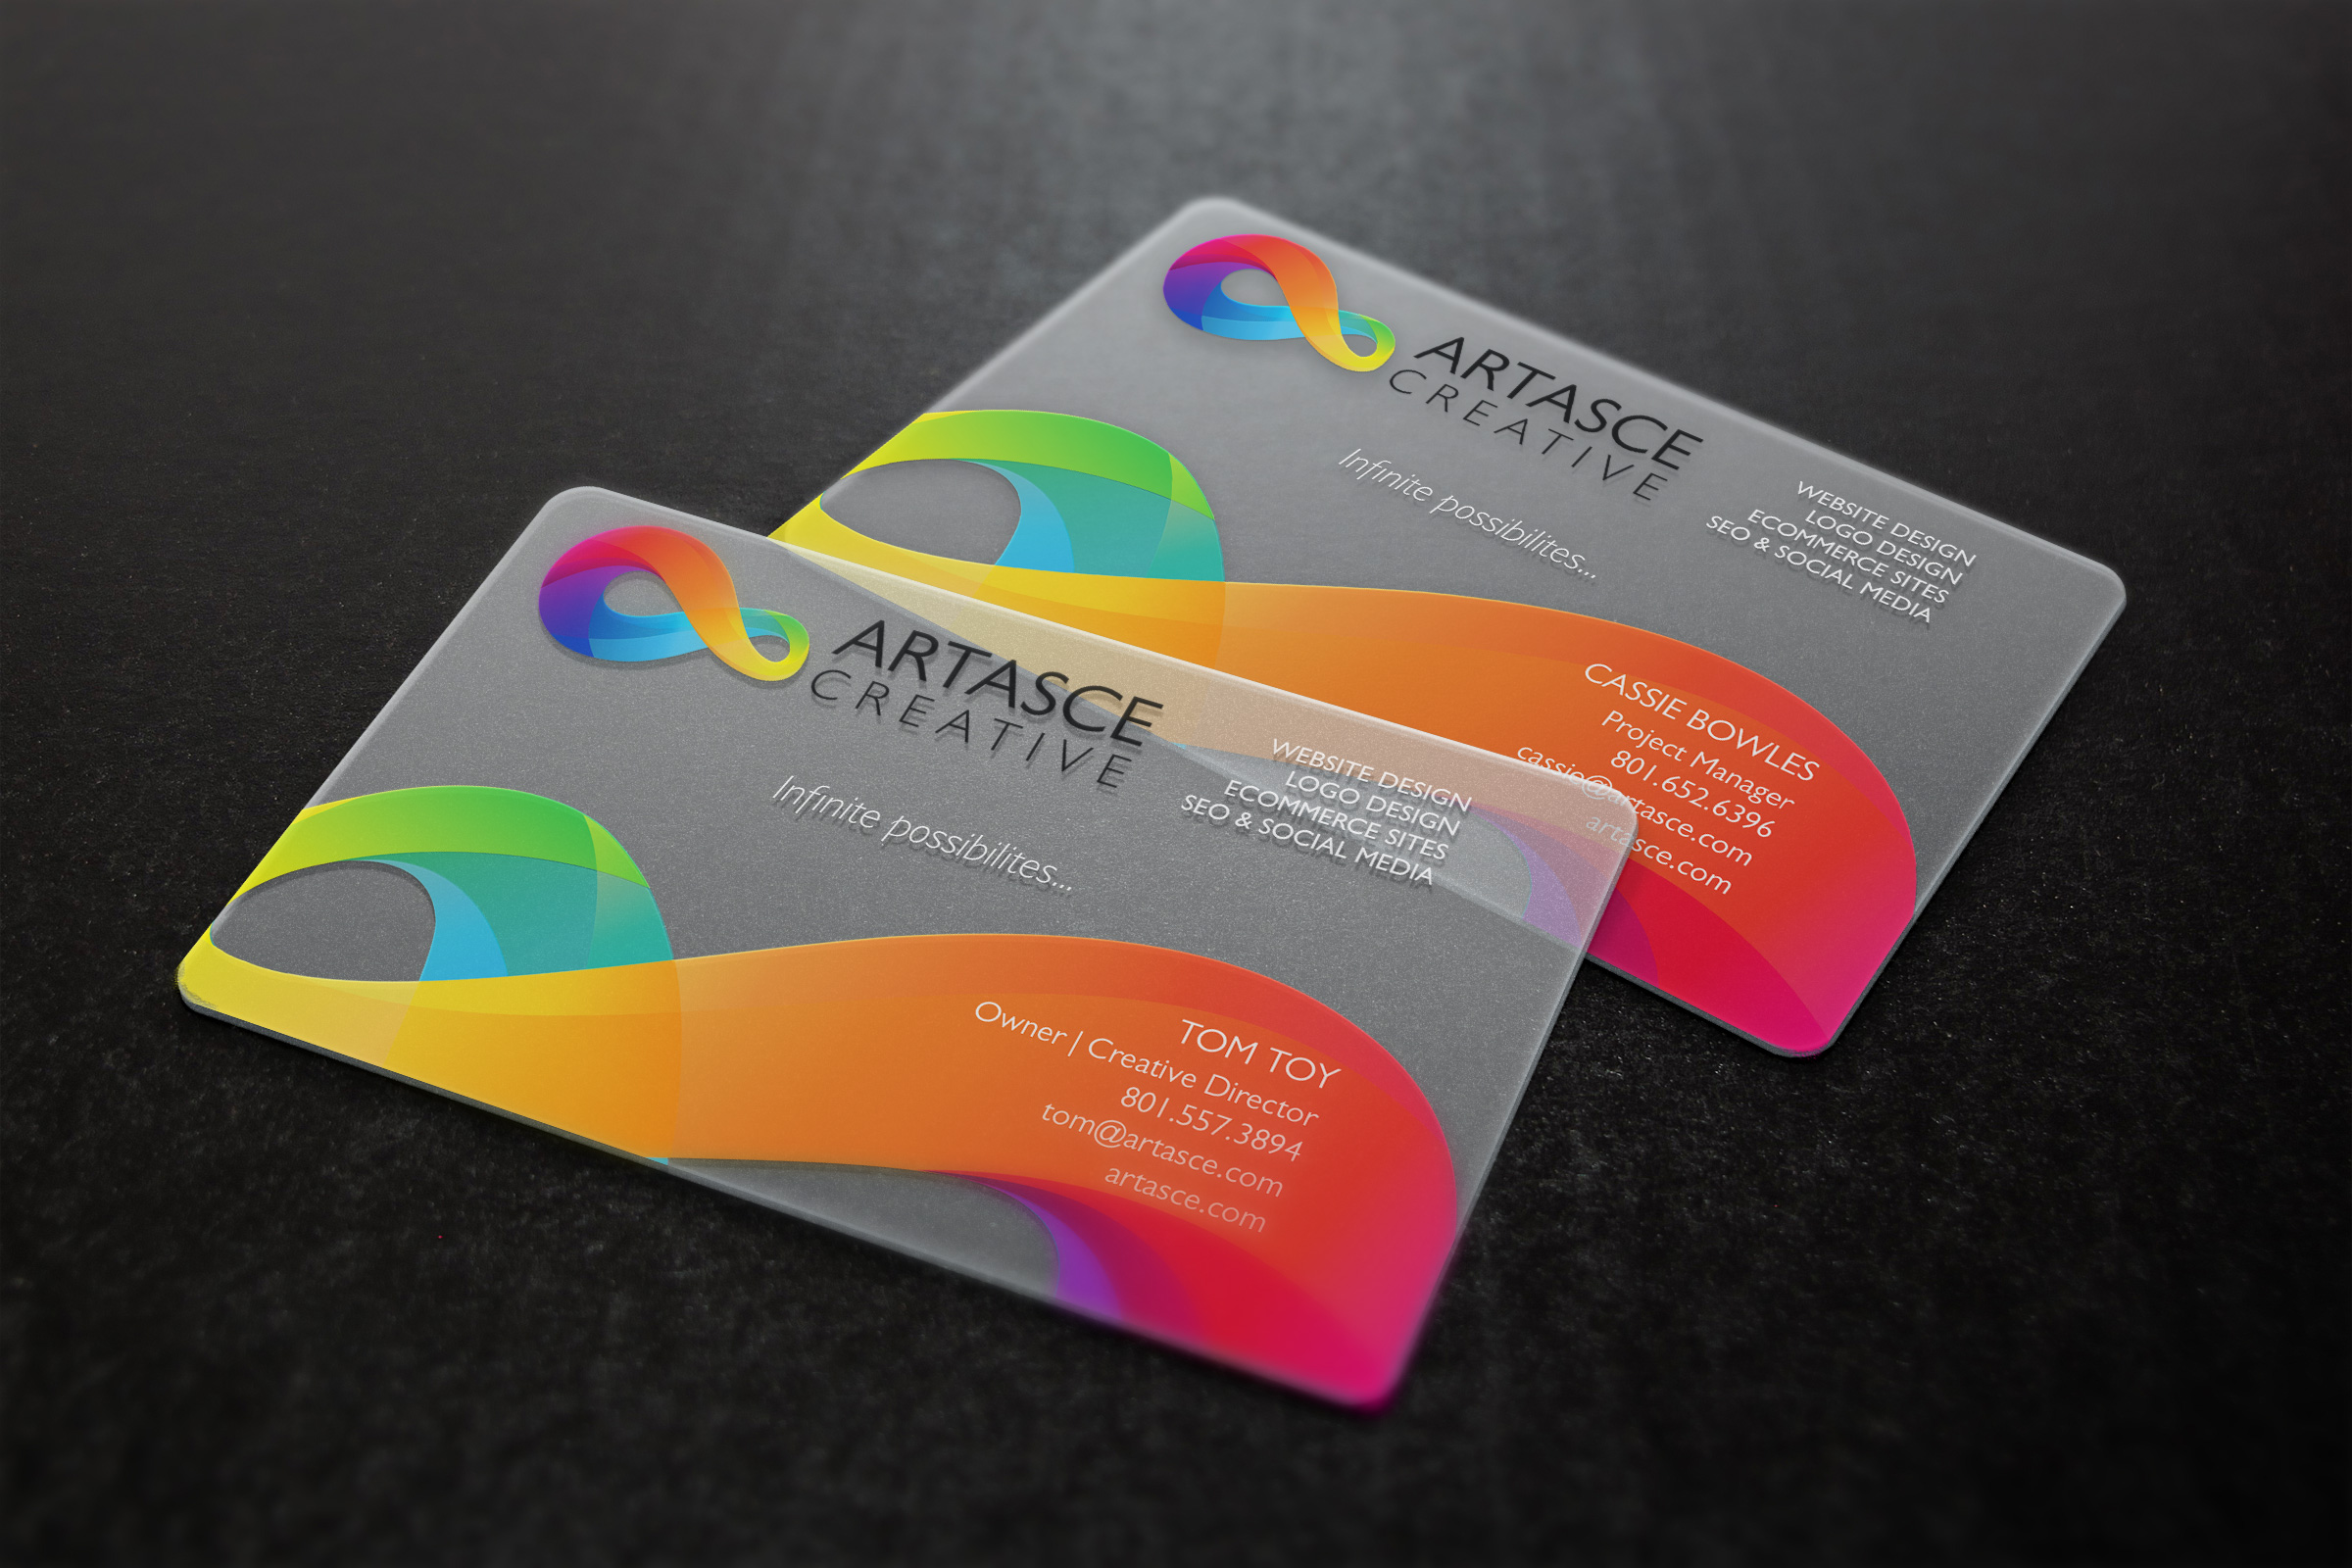 Business Card Design - Artasce Creative